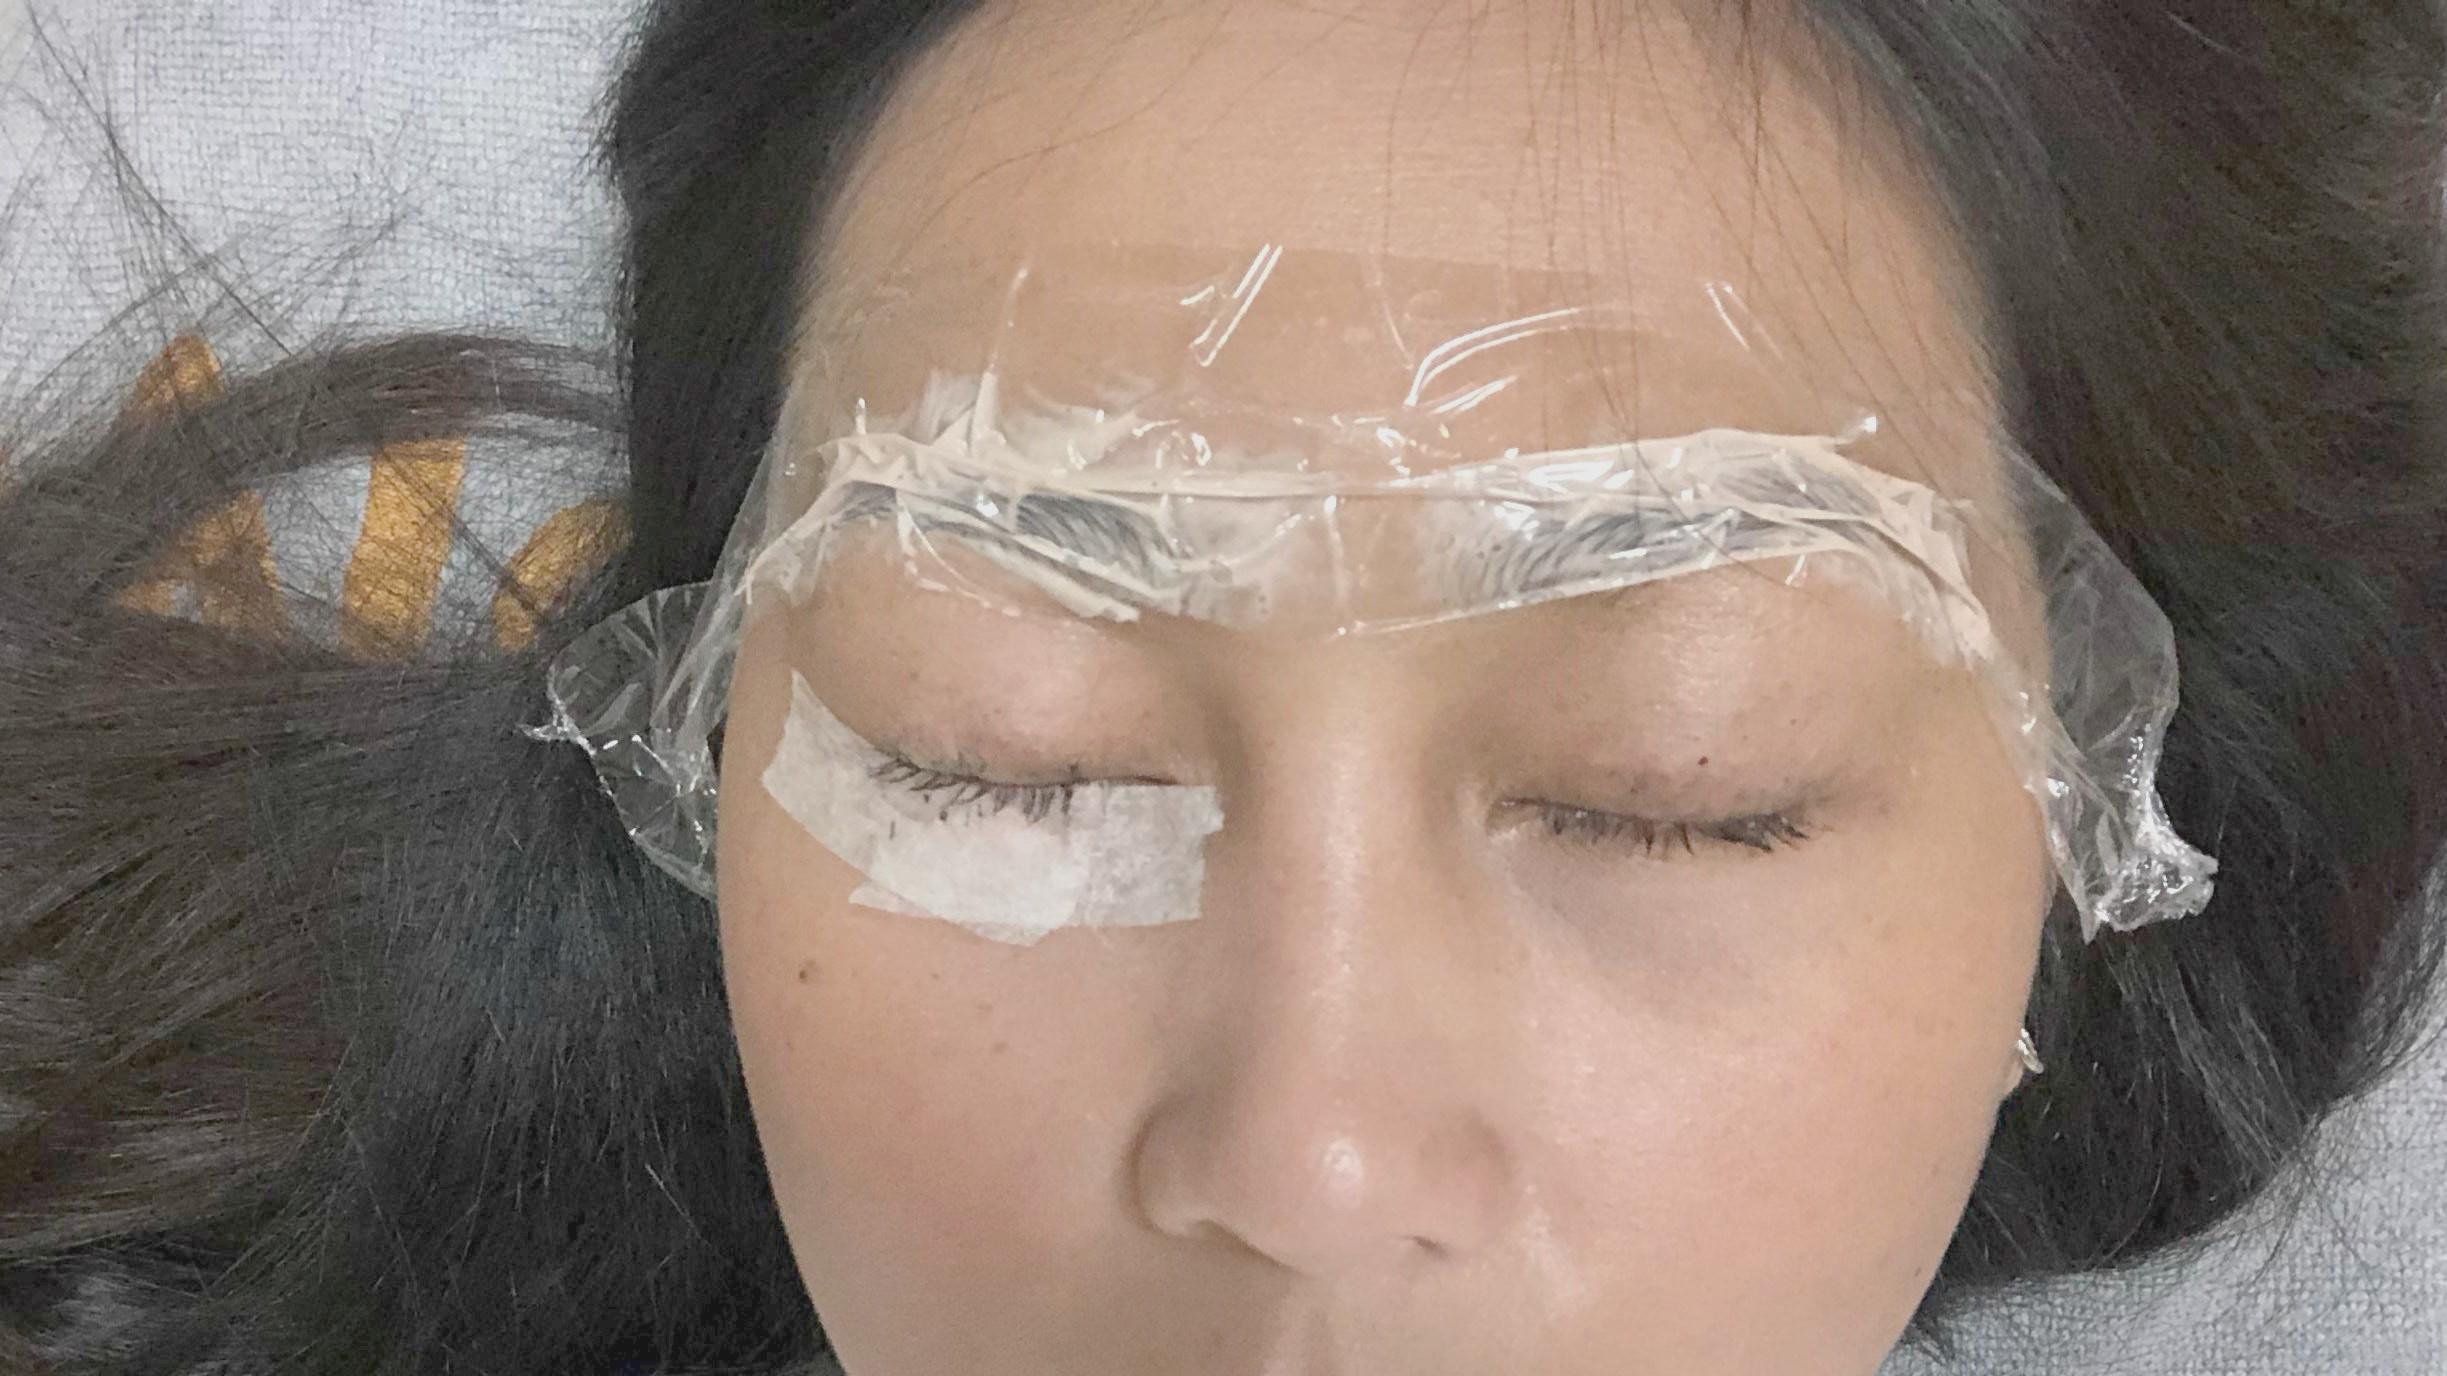 Digital Hyper Realistic Brows Max2cara By Contours